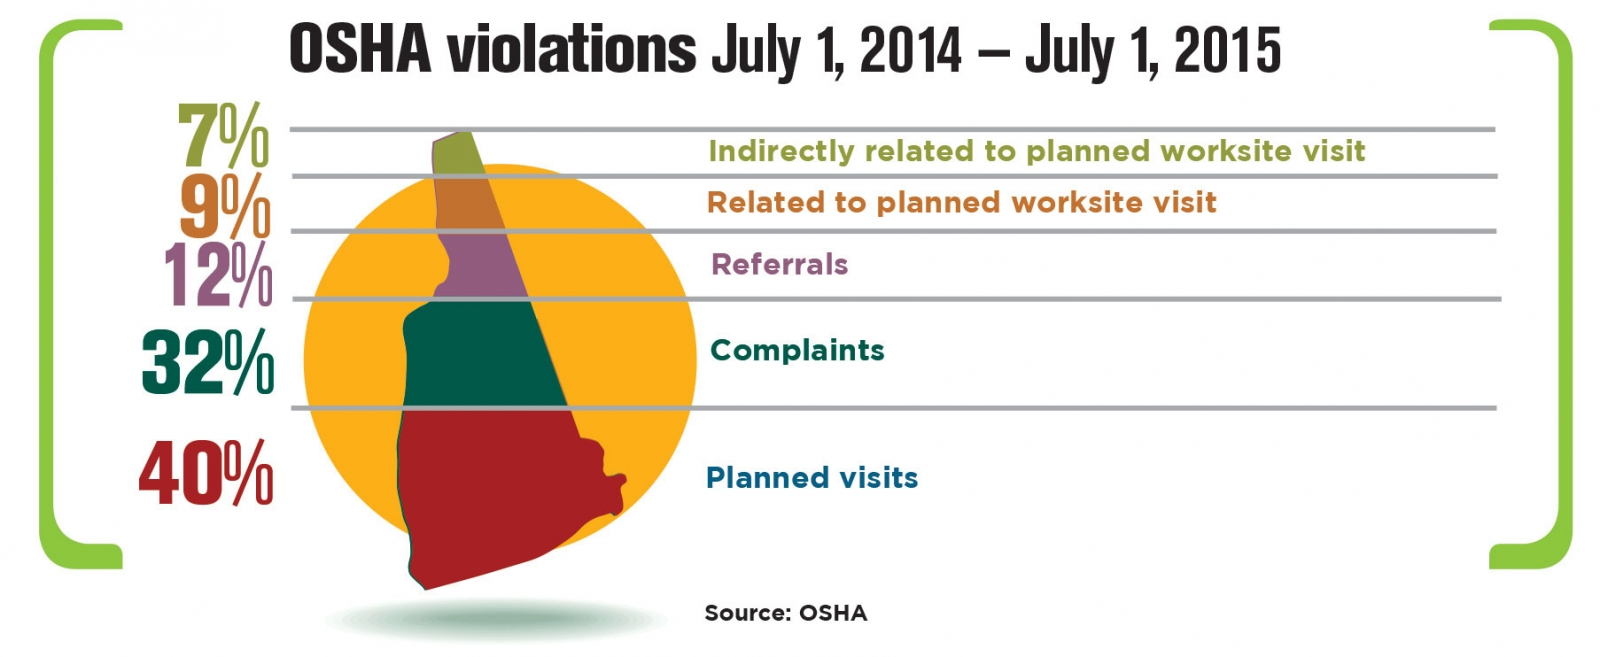 OSHA Violations July 1, 2014 - July 1, 2015. (Superimposed over illustration of New Hampshire) 7% Indirectly related to planned worksite visit. 9% Related to planned worksite visit. 12% Referrals. 32% Complaints. 40% Planned visits. Source: OSHA.